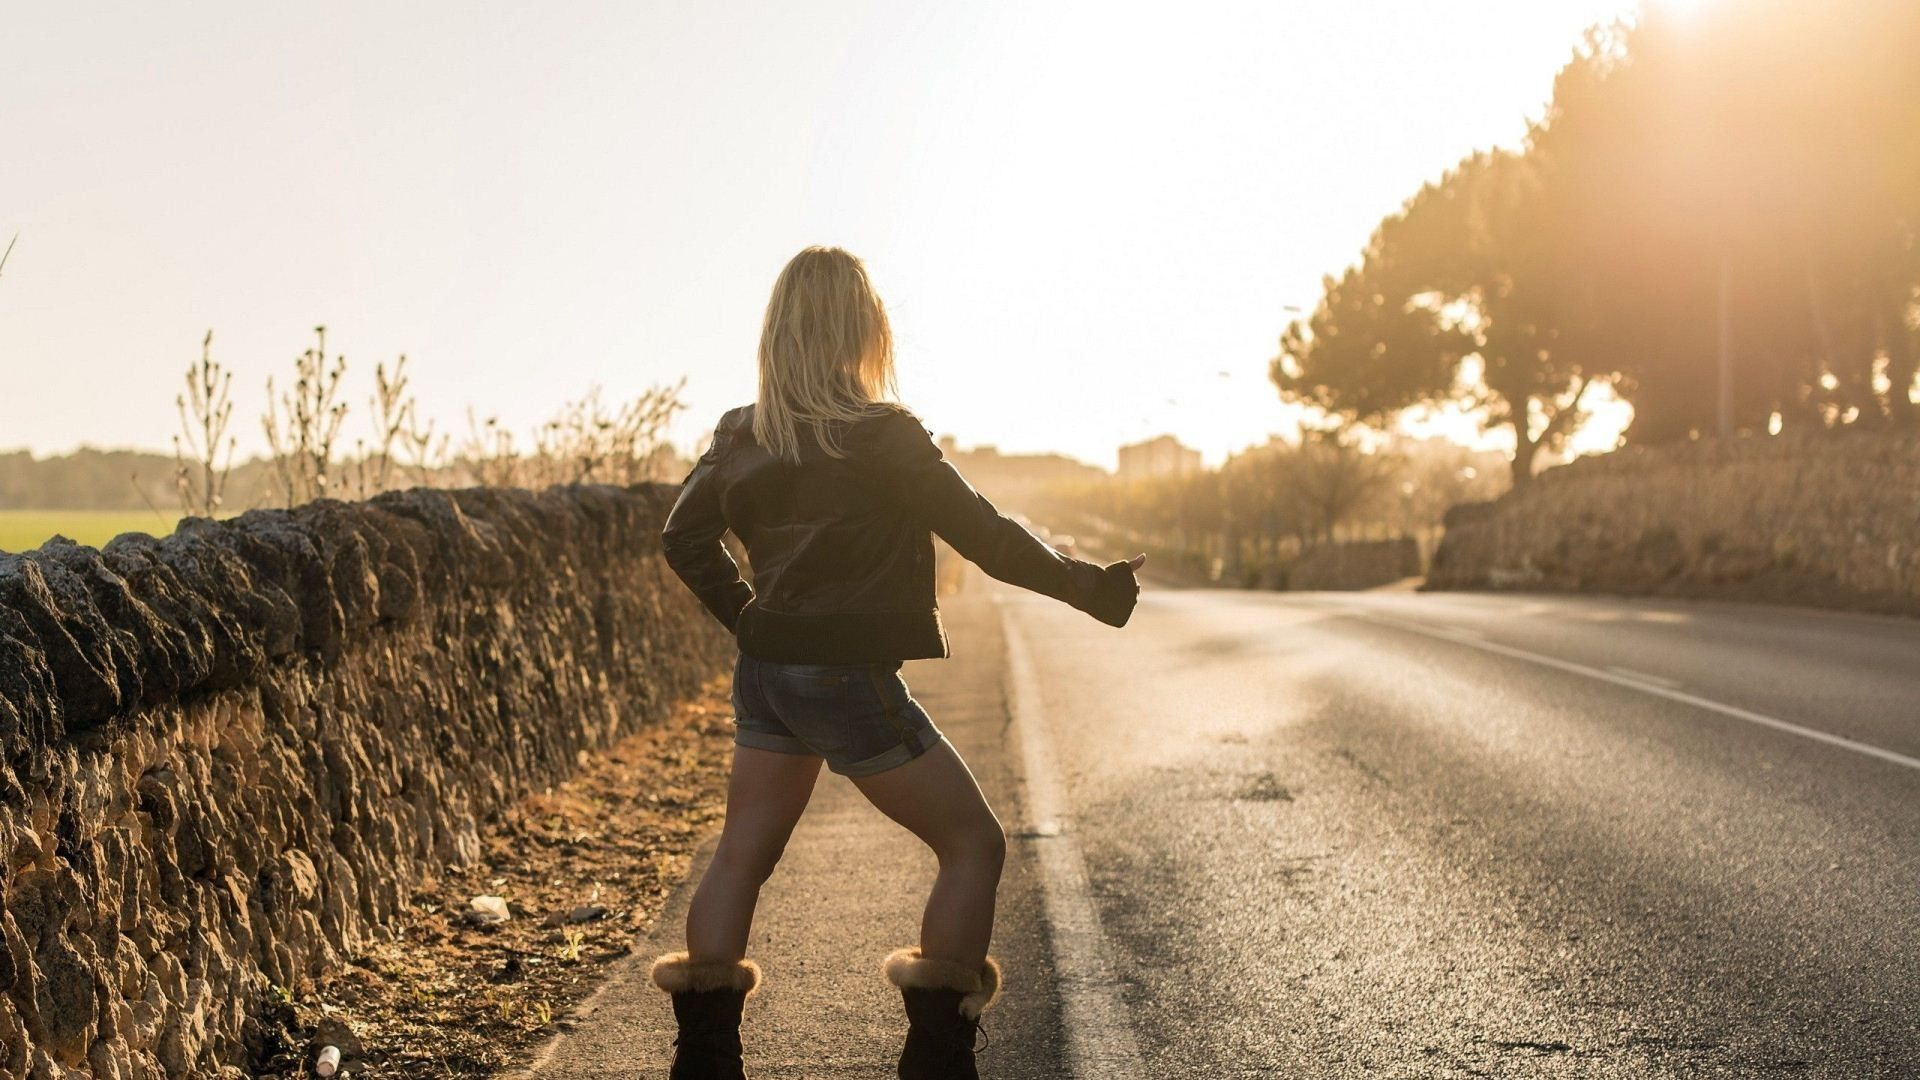 girl, road, style - http://www.wallpapers4u.org/girl-road-style/